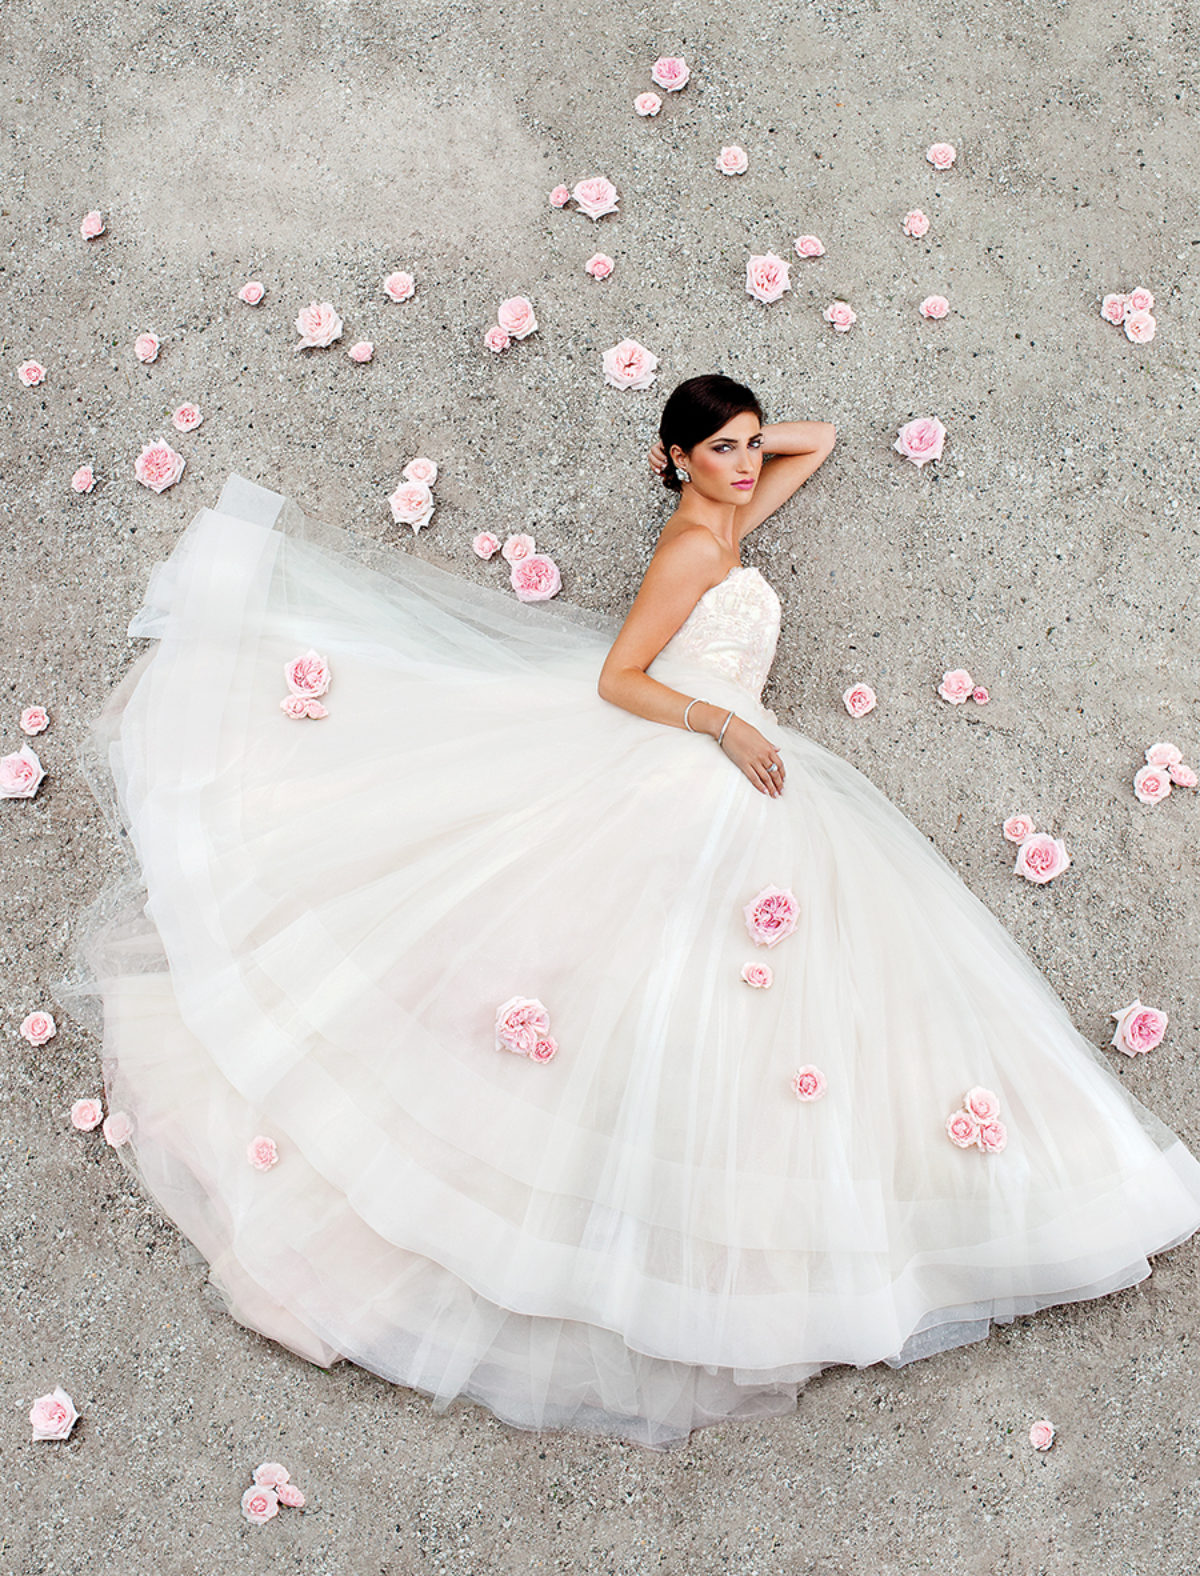 Lazaro Blush Tulle Bridal Ball Gown With Strapless Sweetheart Neckline,  Beaded Chantilly Lace Bodice, And Tulle Skirt With Horsehair Hem ($3,800)  At